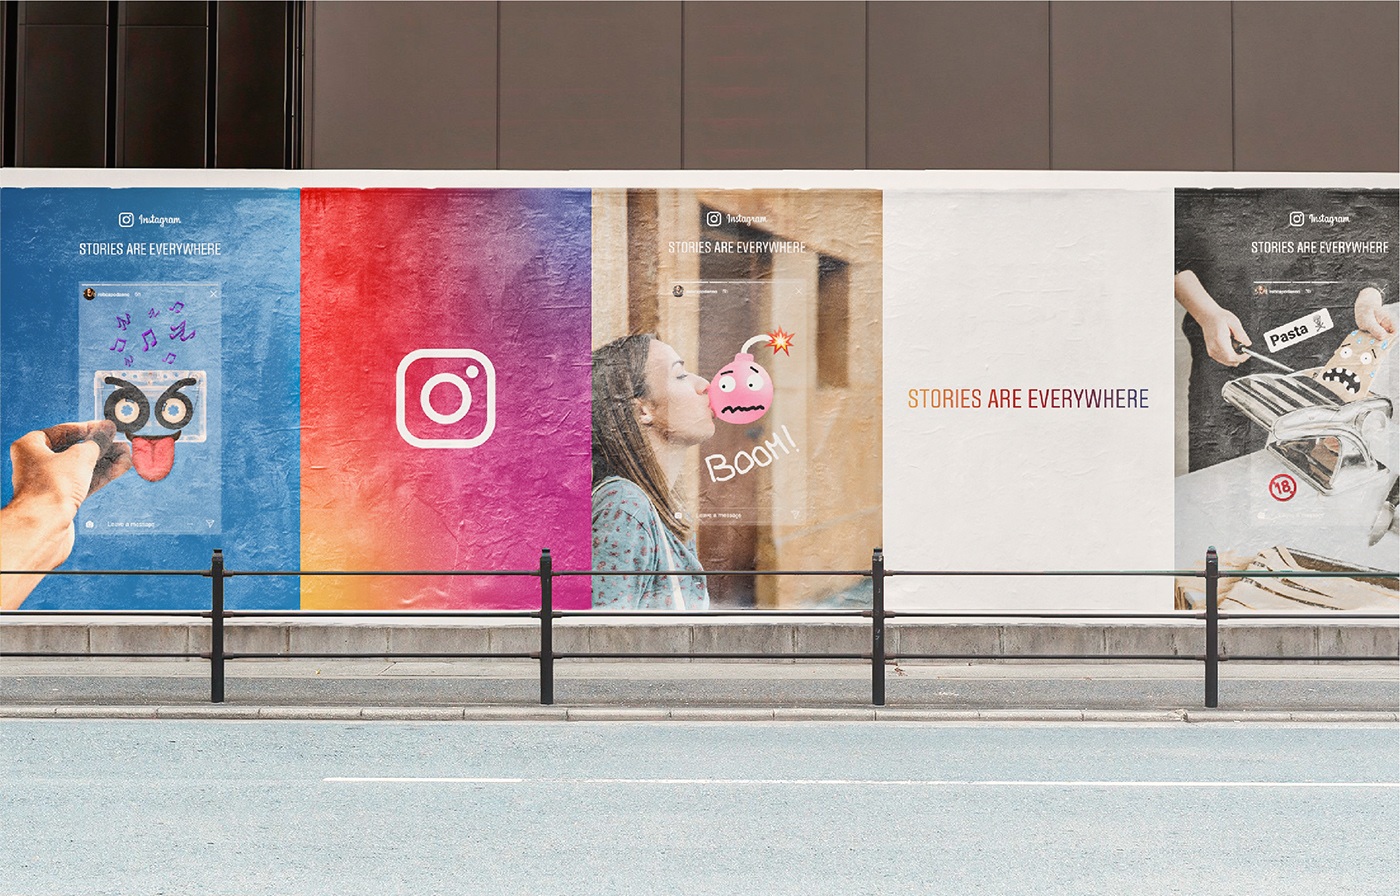 ads Advertising  art direction  campaign graphic media social